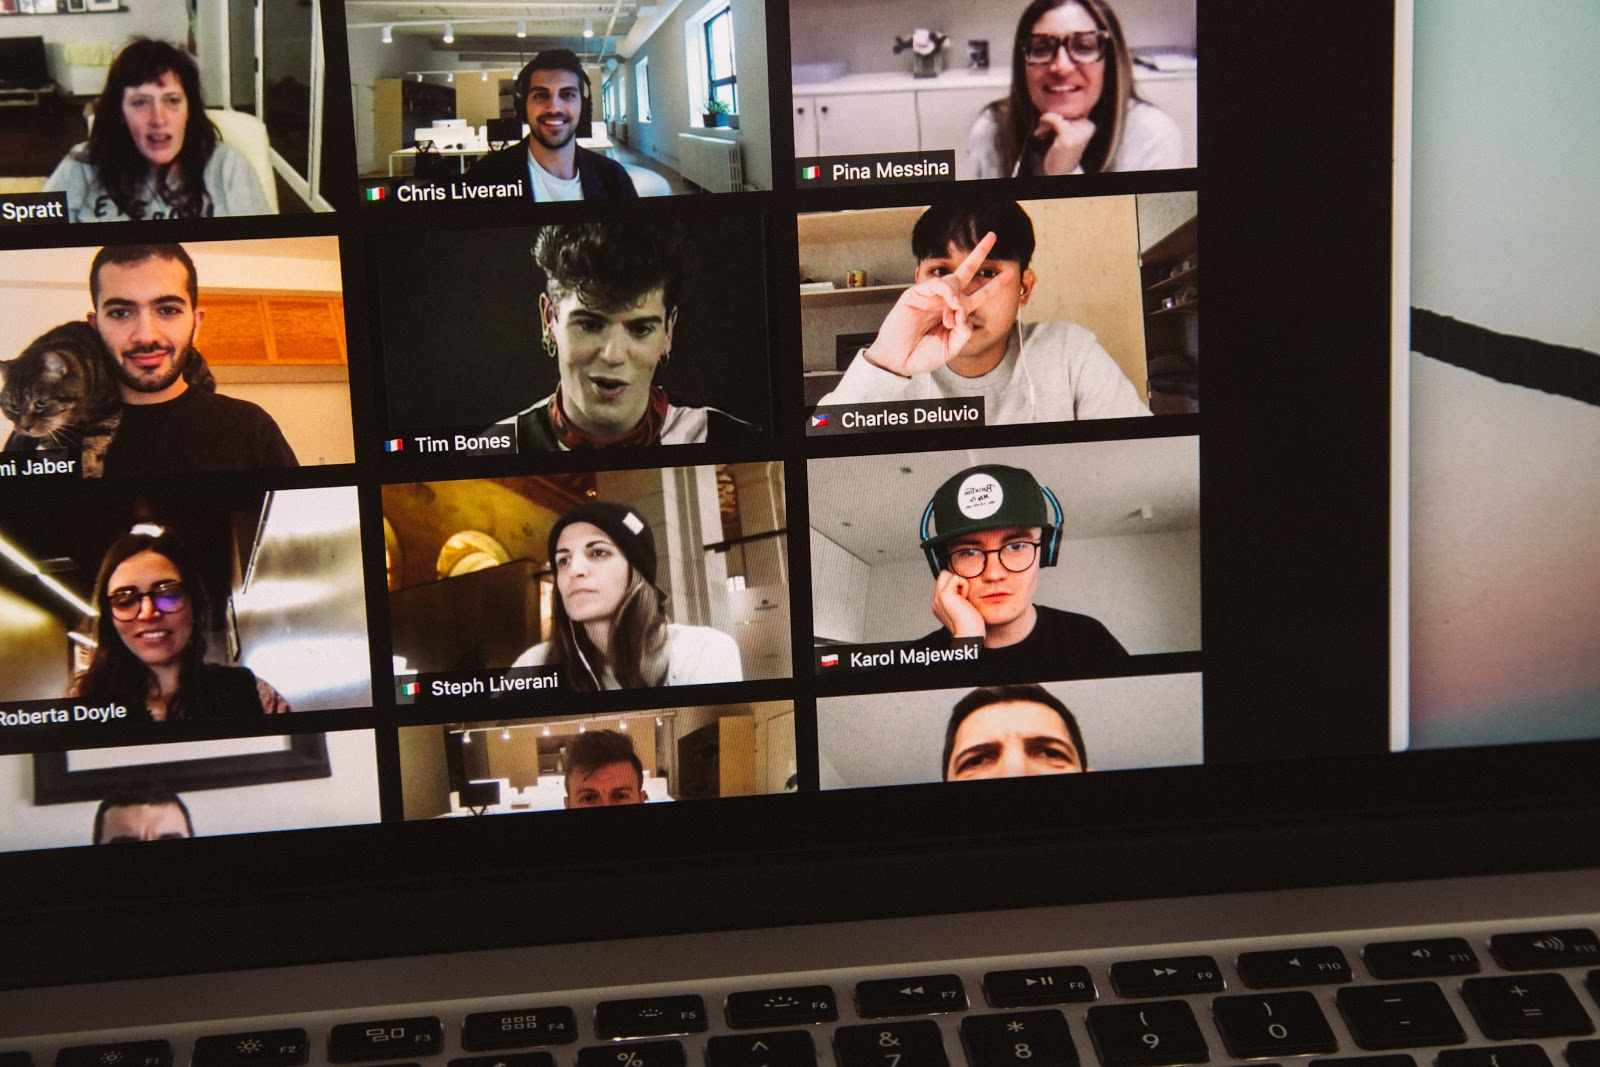 Building online community with video calls